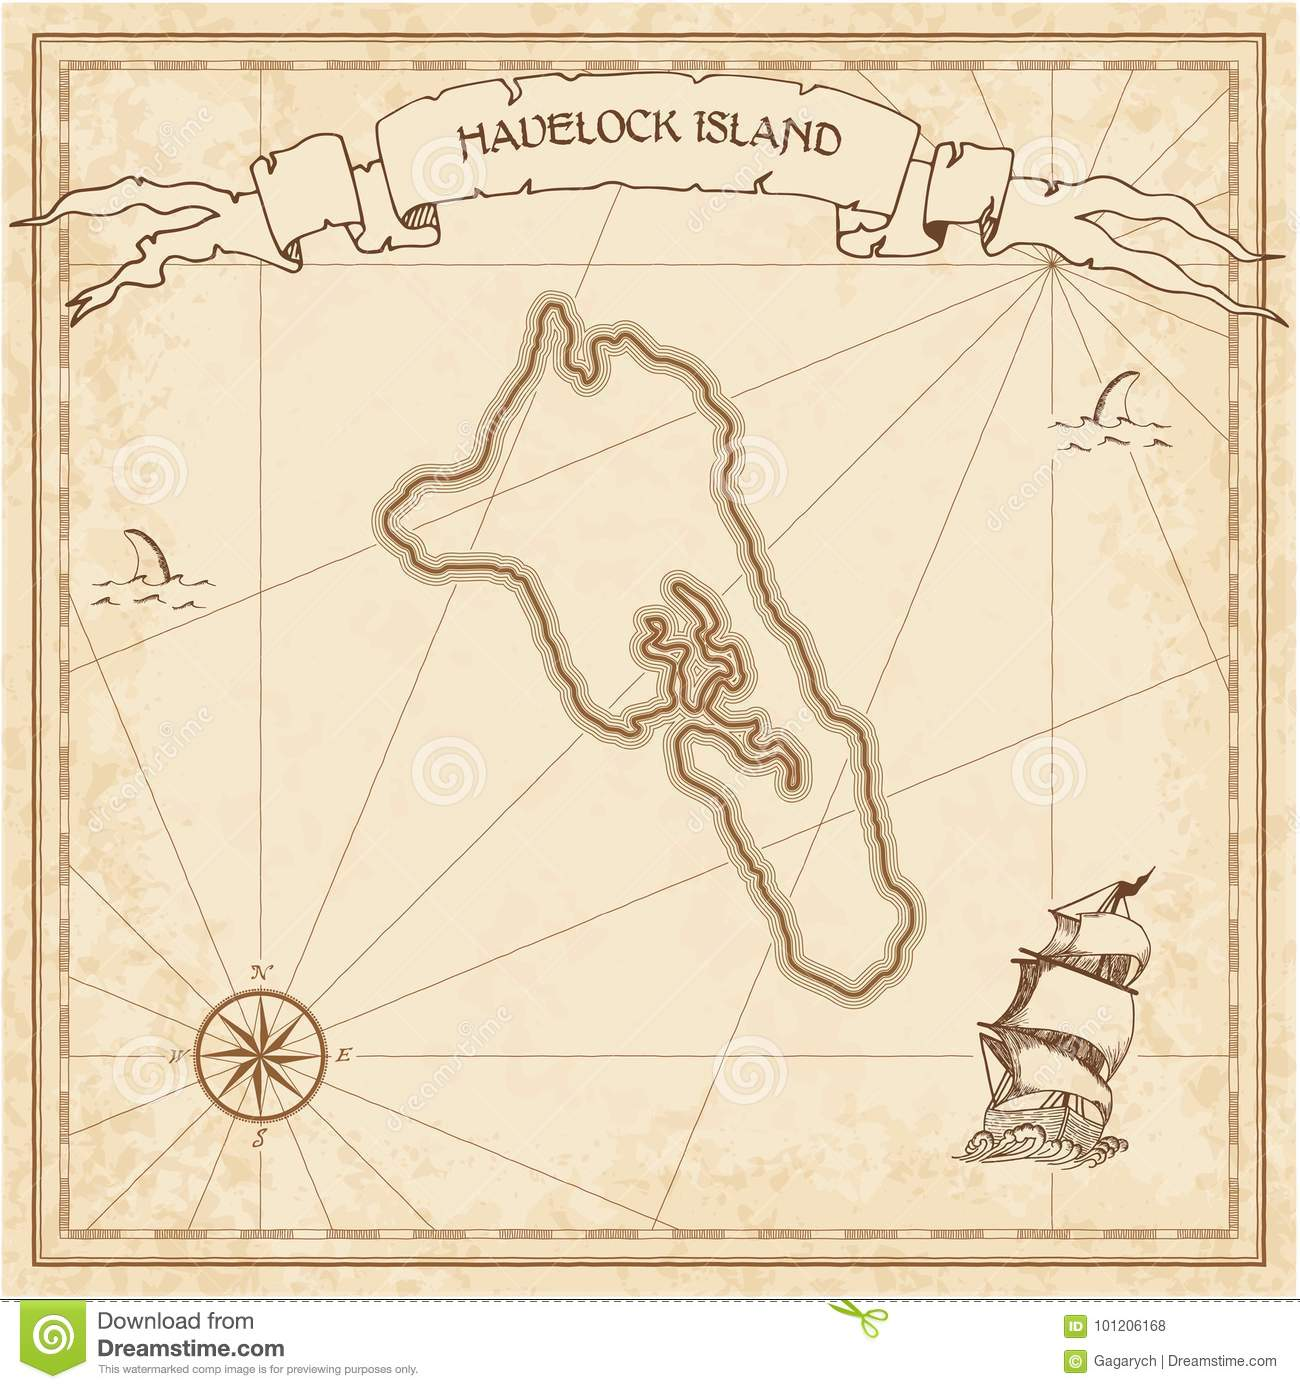 Havelock Island: Havelock Island Old Treasure Map. Stock Vector